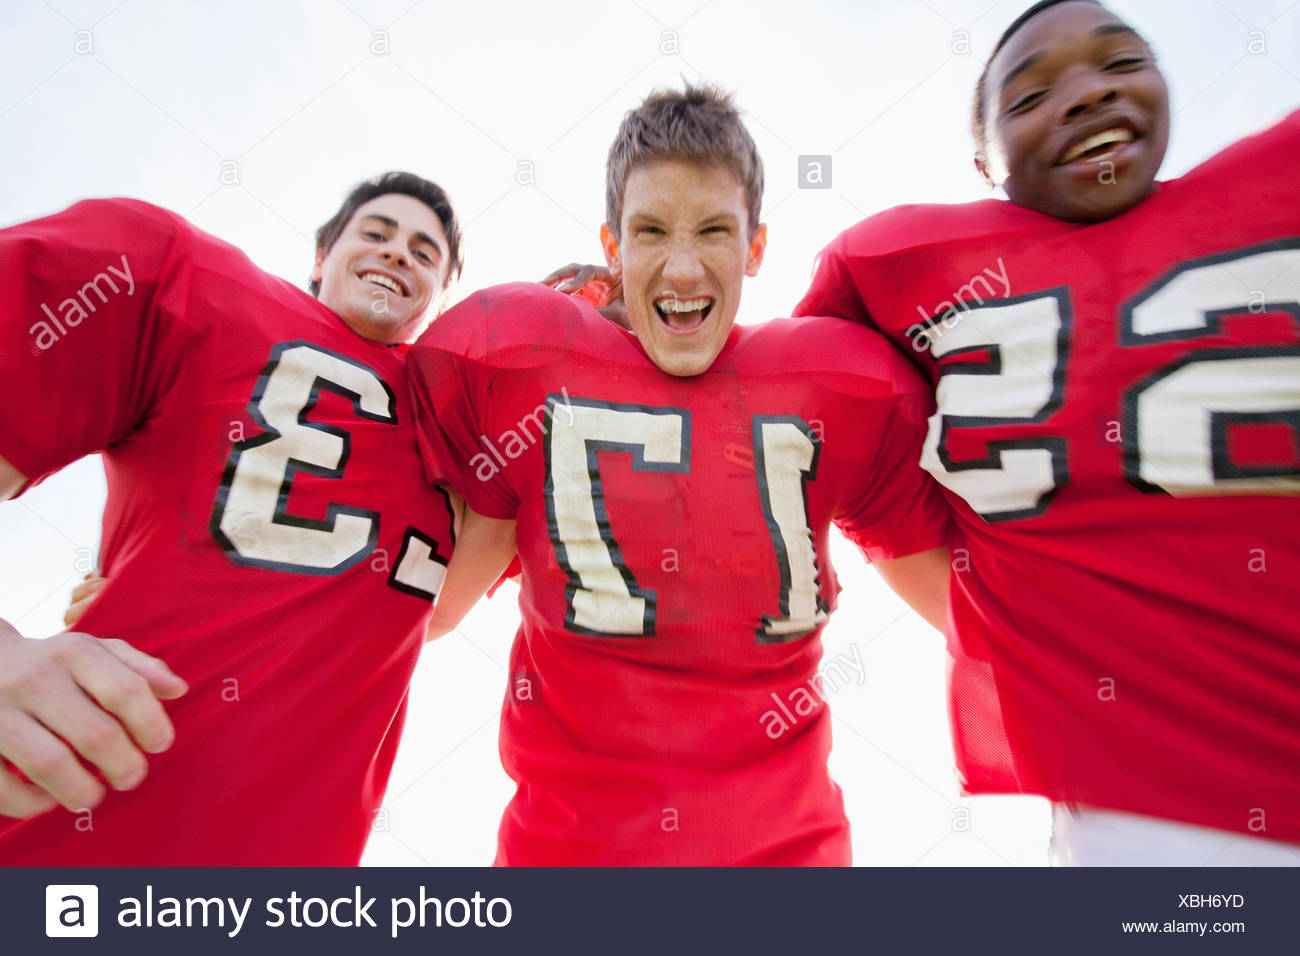 college football players in motion - Stock Image